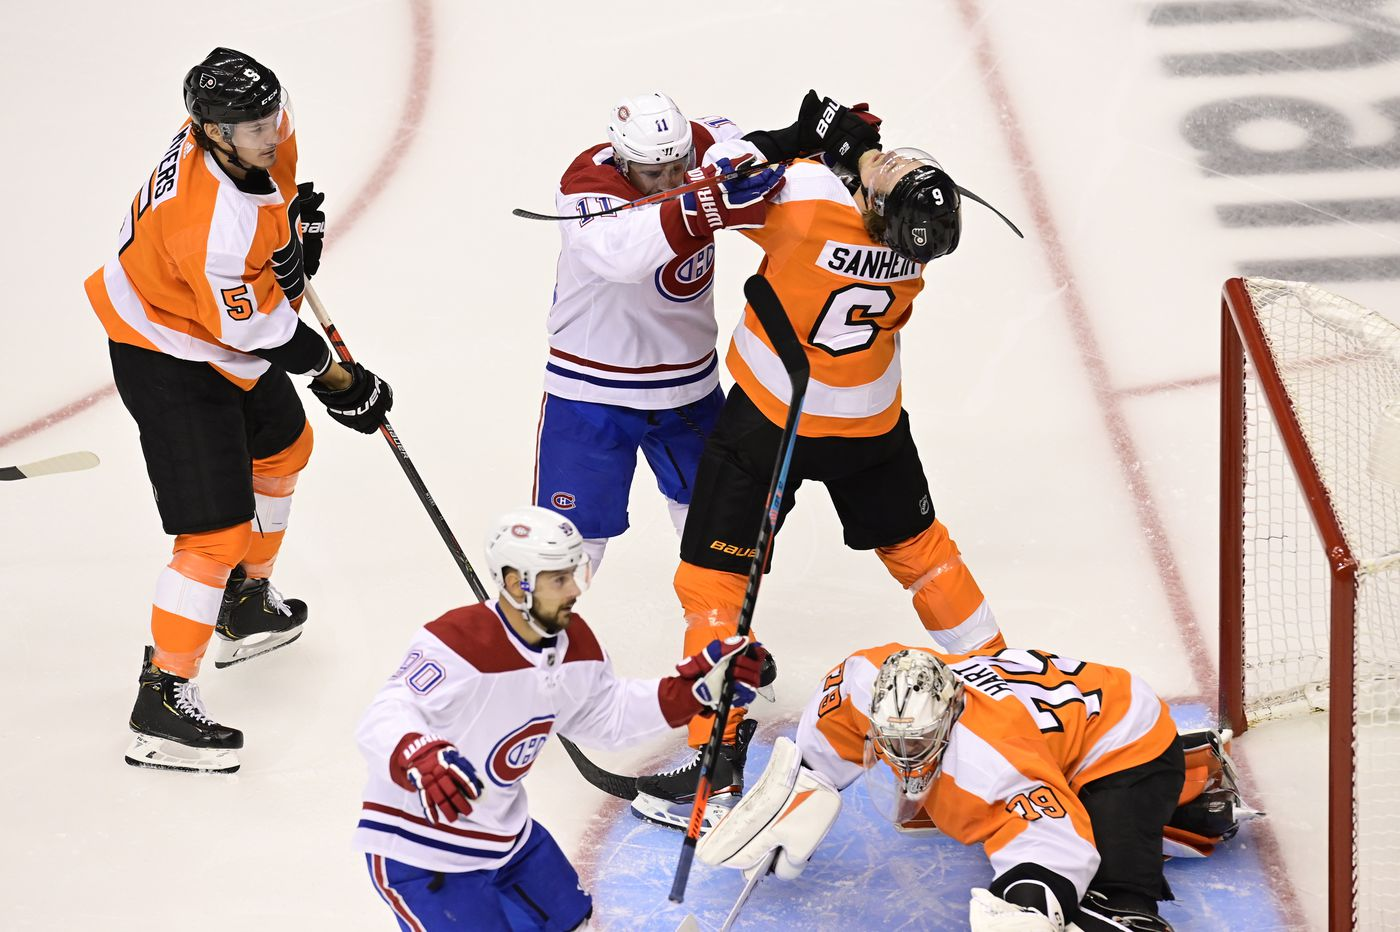 Flyers-Canadiens Game 3 preview: TV, streaming info, odds